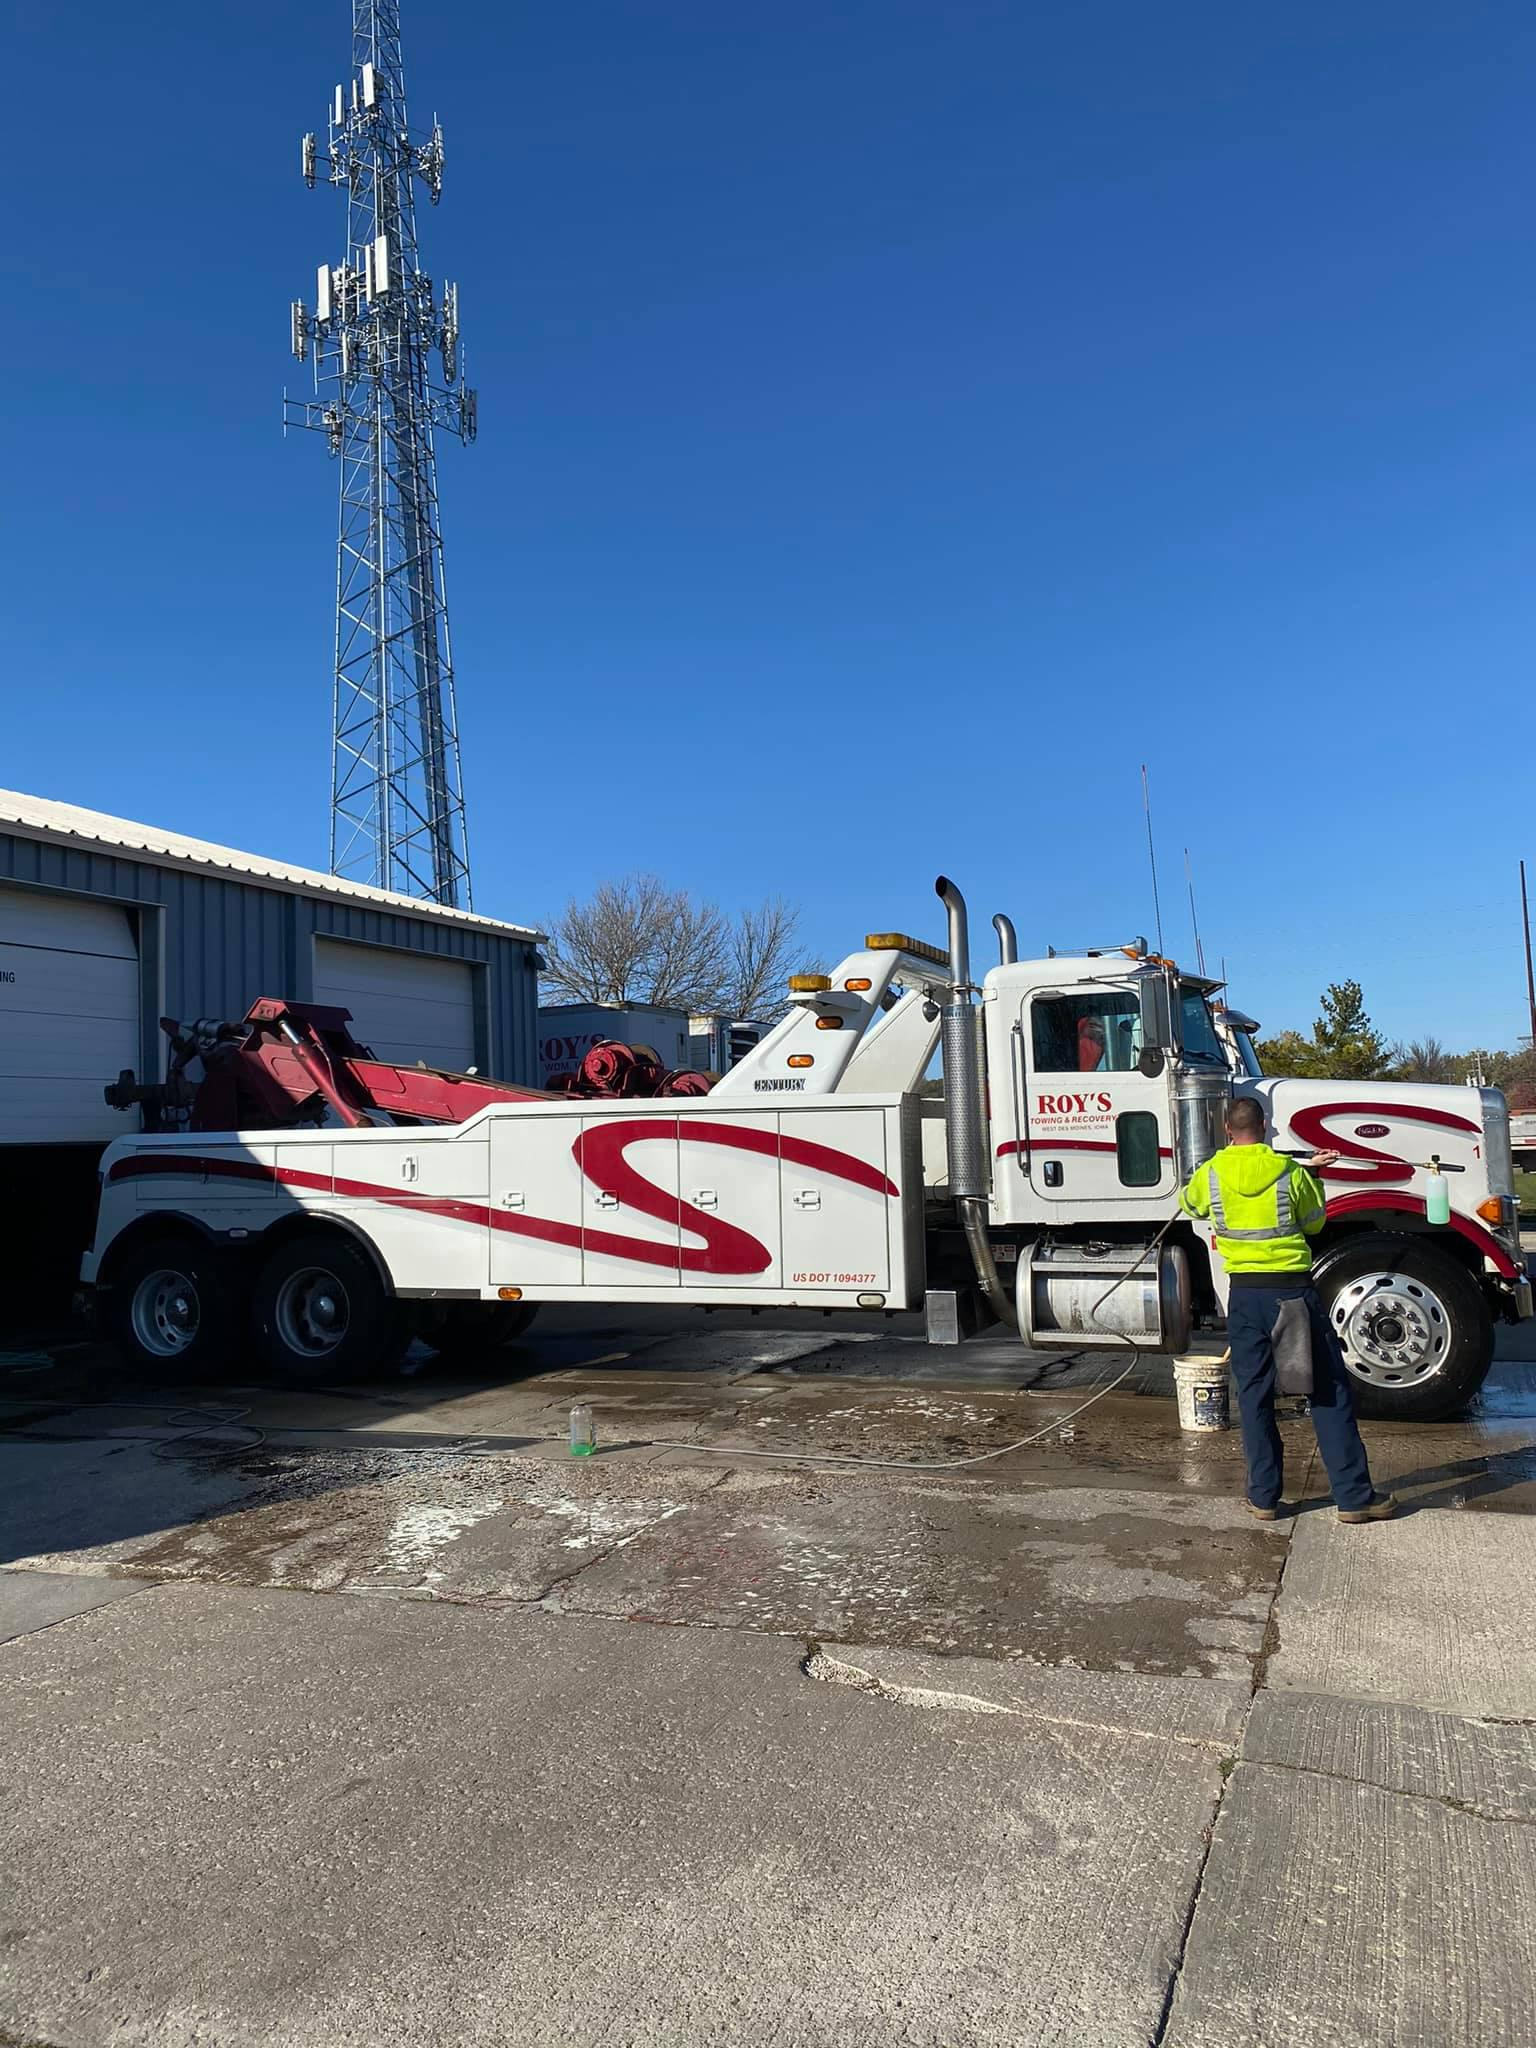 Roy's Towing and Recovery